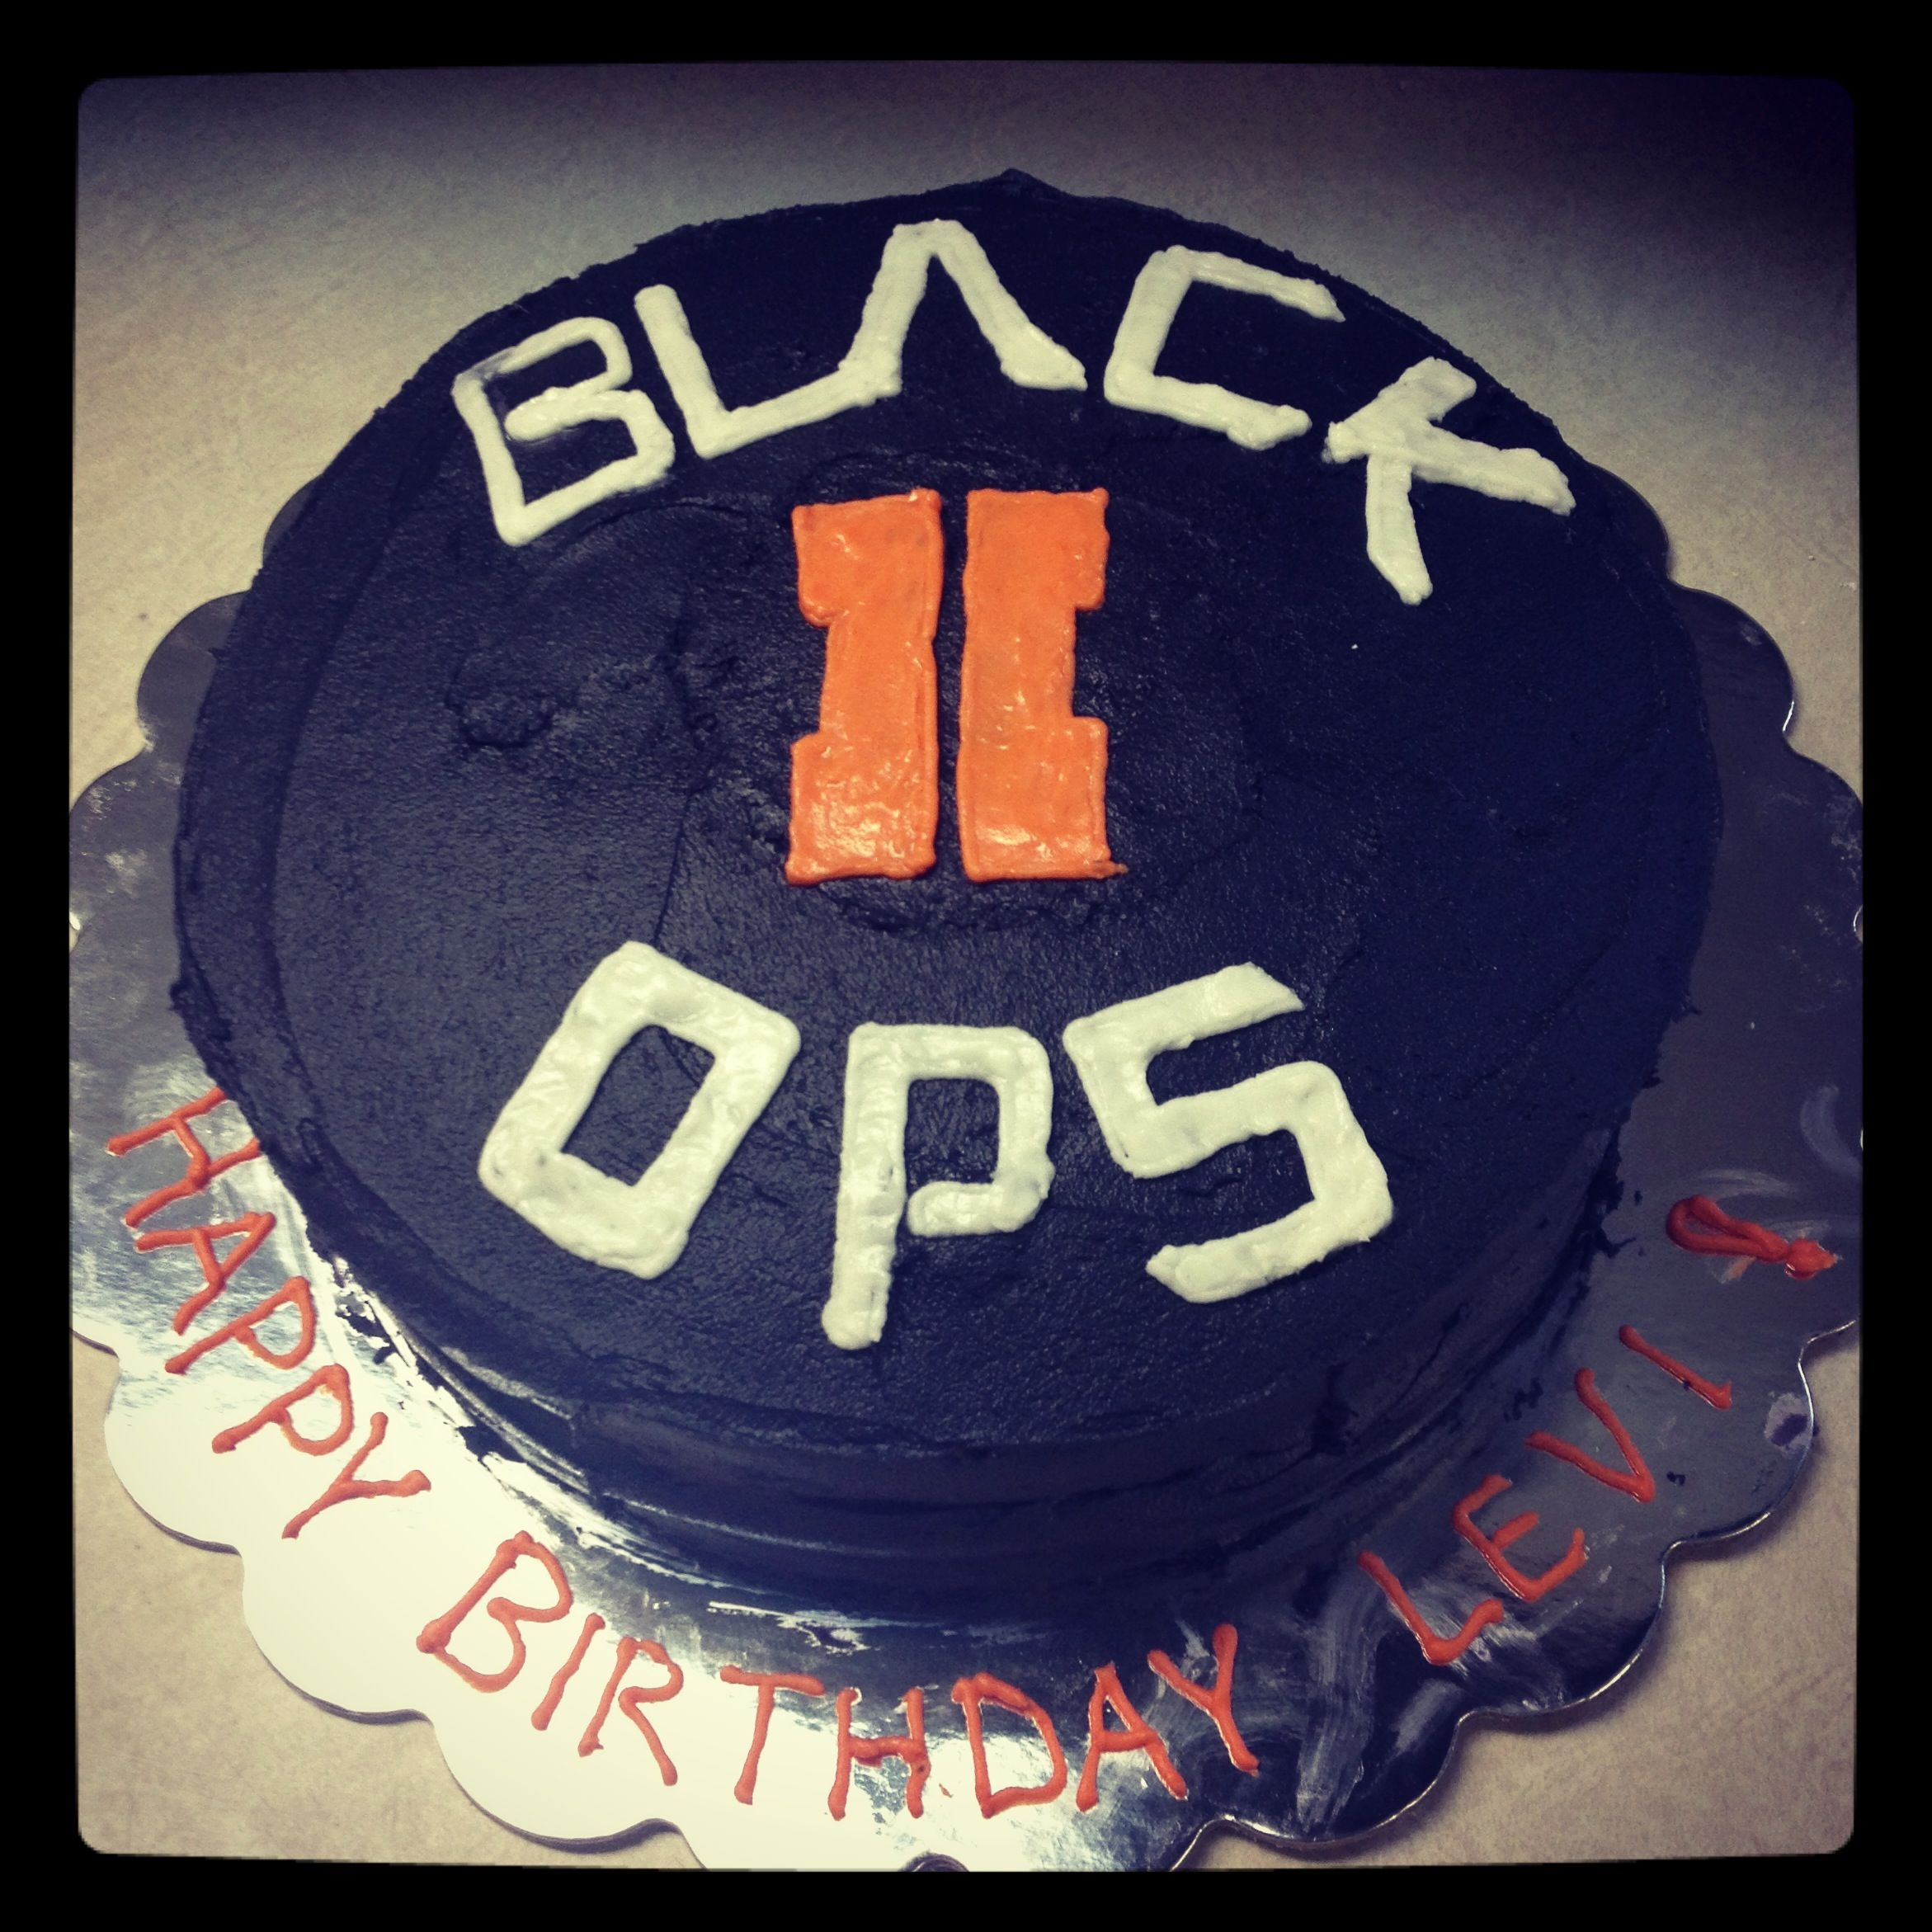 This Dude Must Really Be A Fiend Black Ops 2 Birthday Cake Kurt